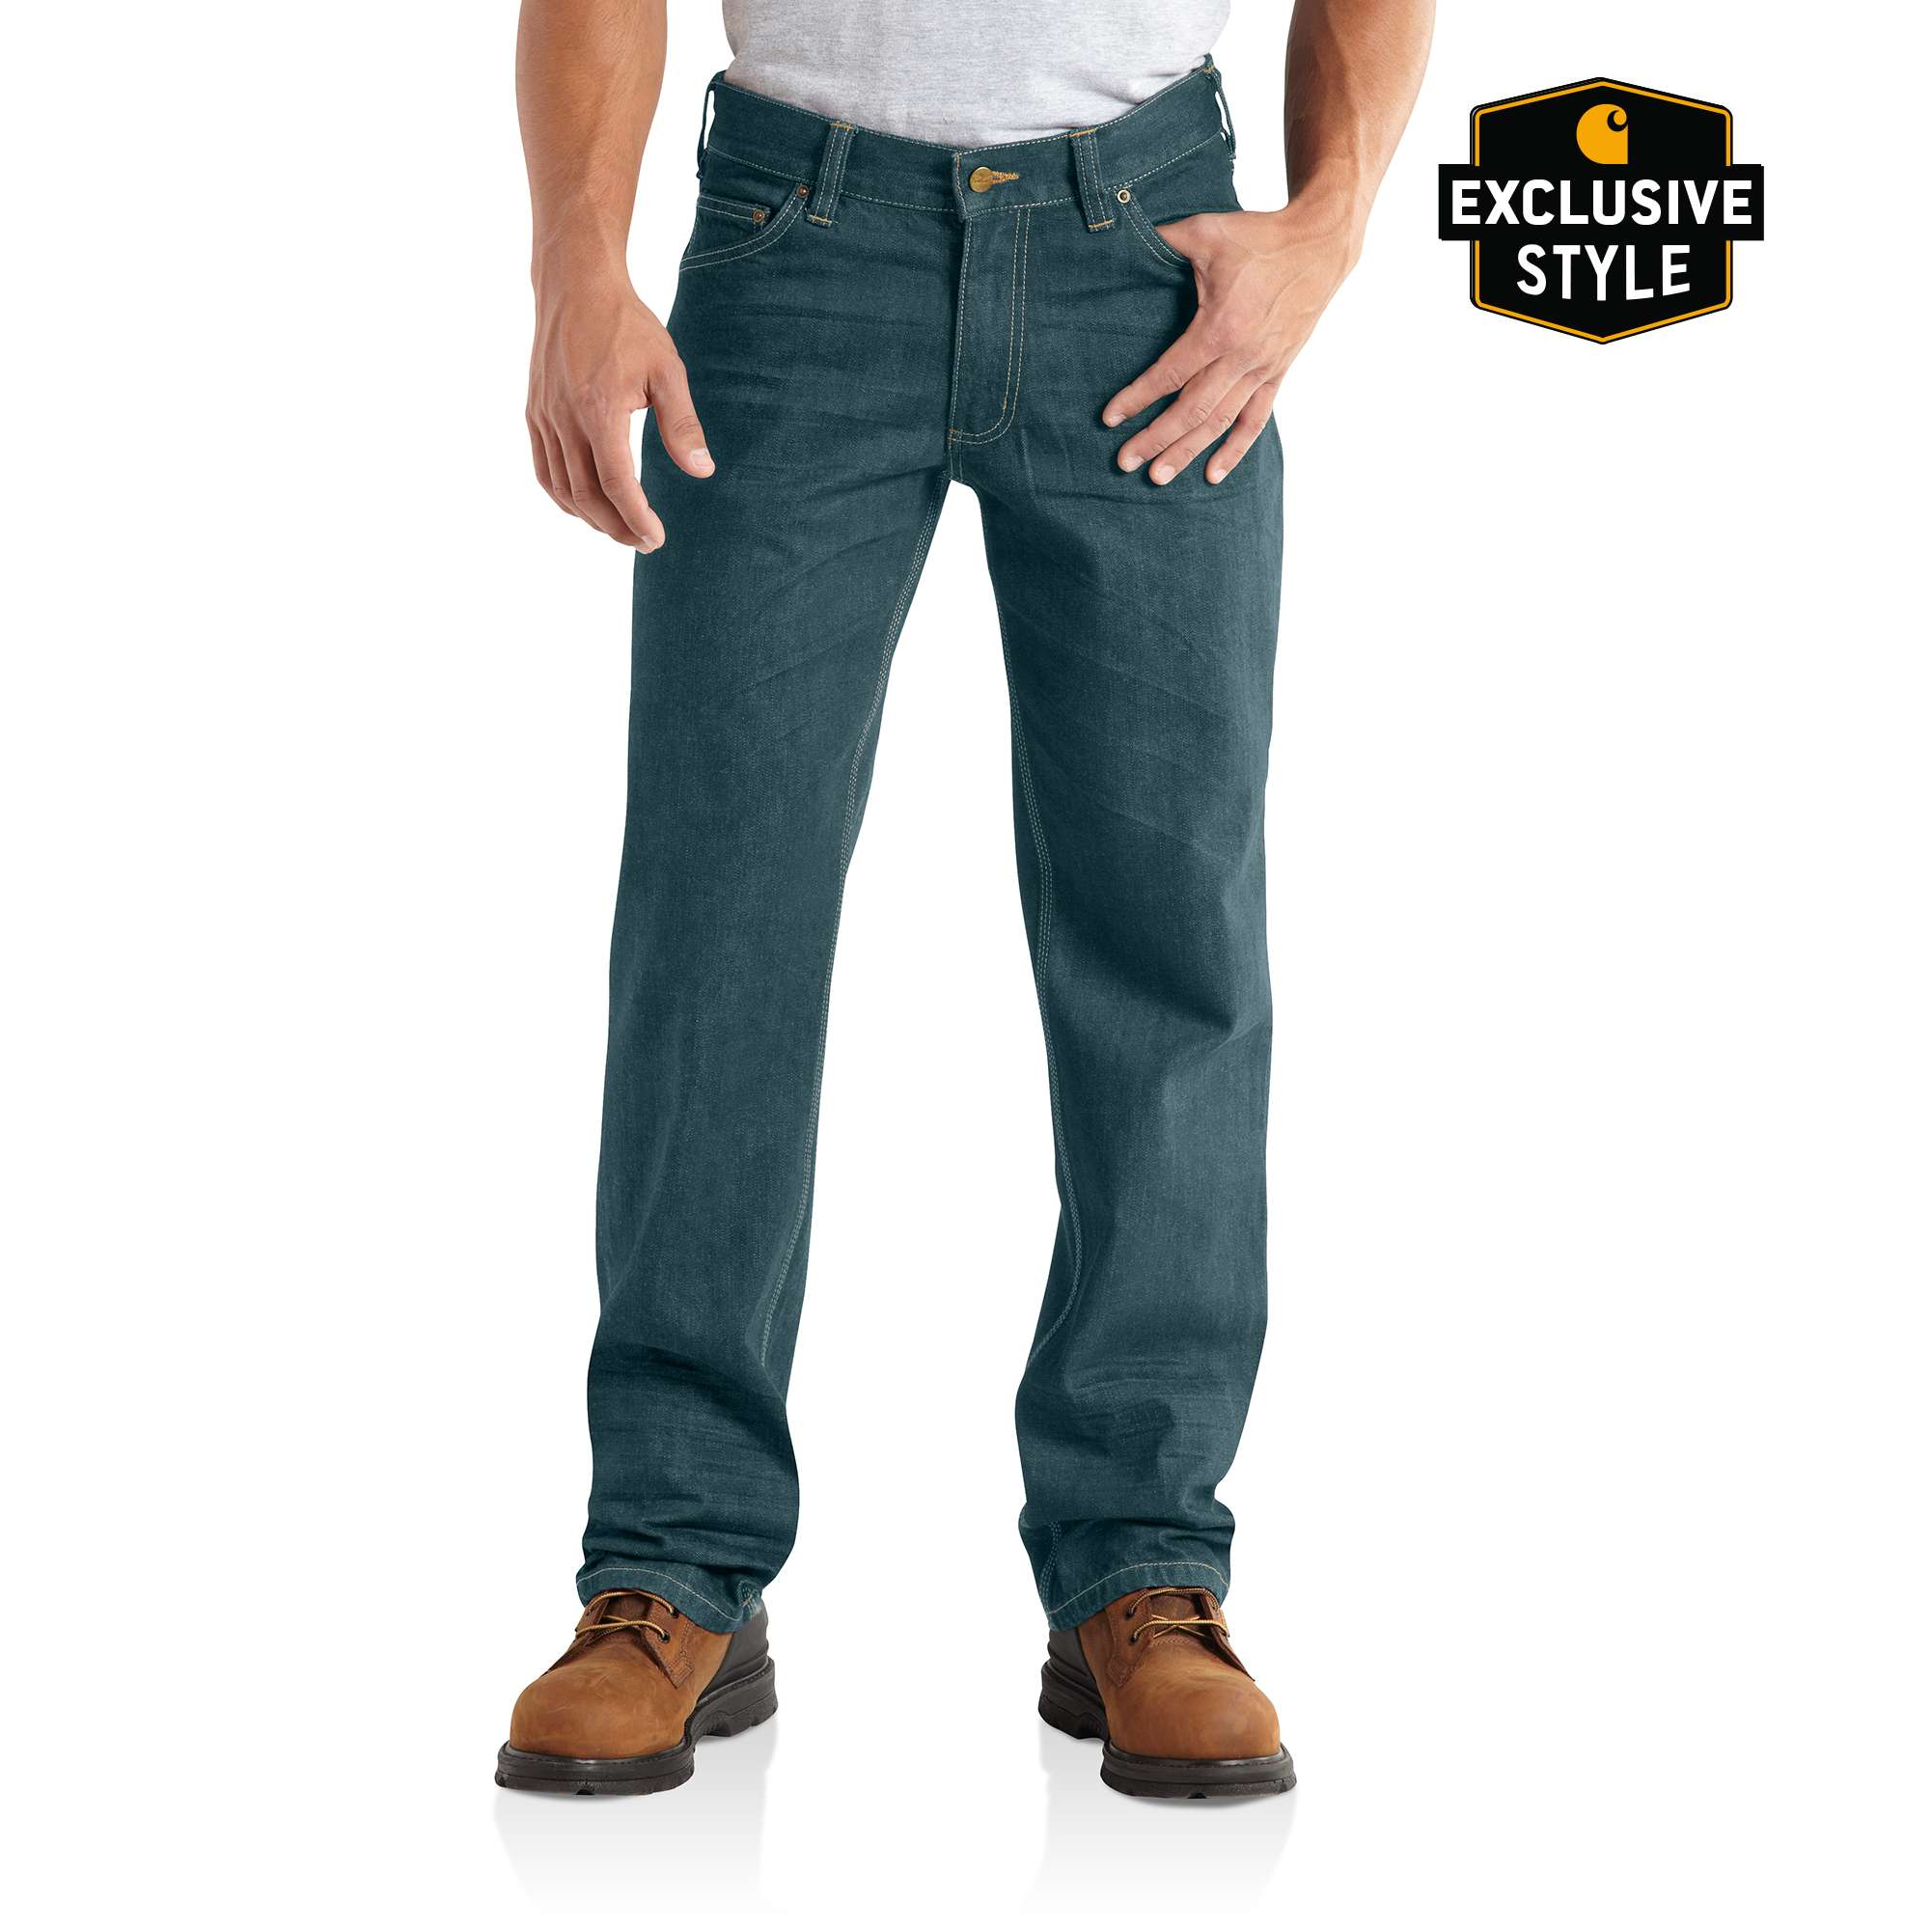 Carhartt Series 1889 Loose-fit Straight-leg Jean